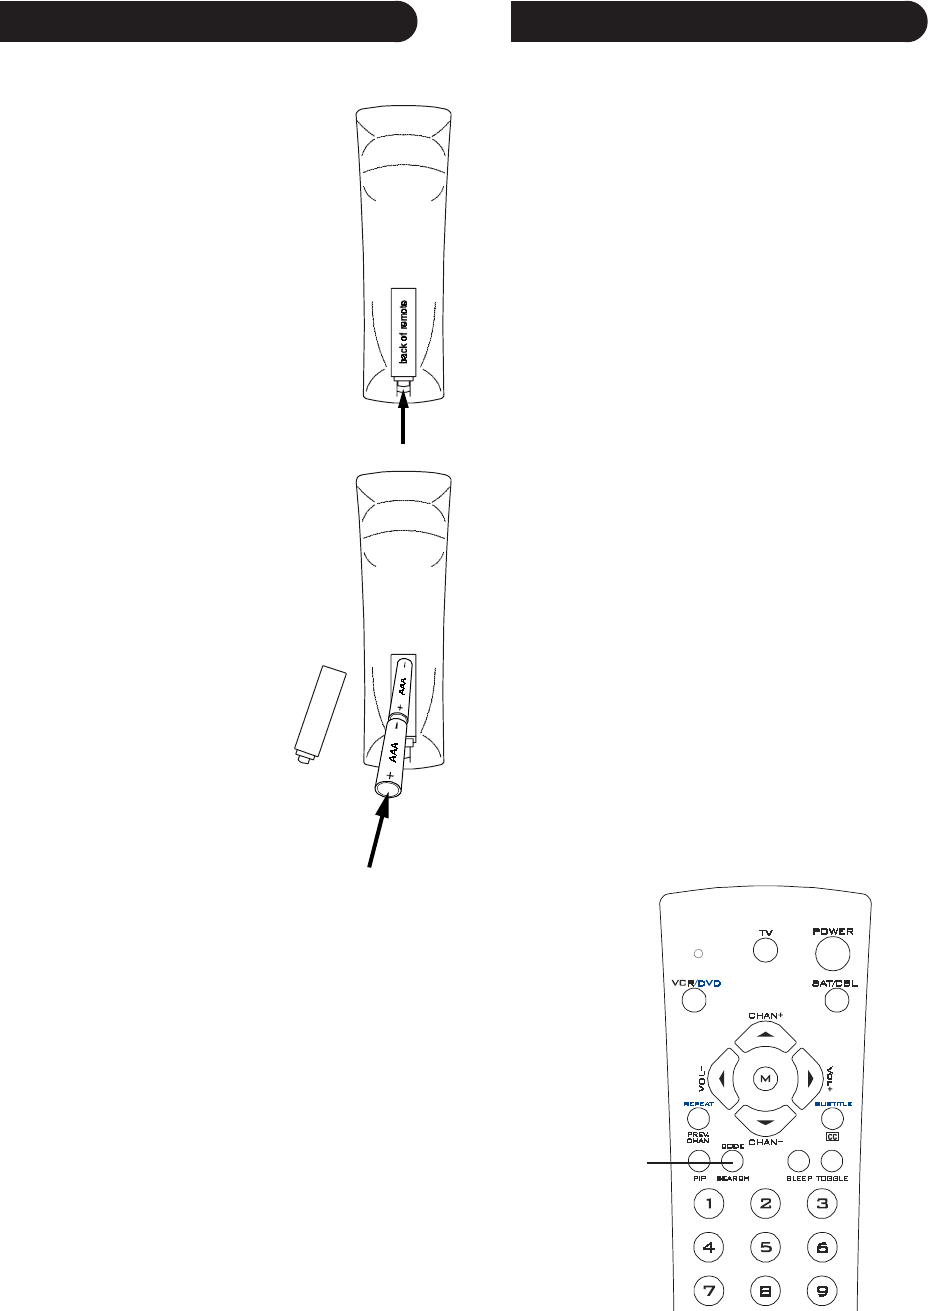 Page 3 of Radio Shack Universal Remote 15-2143 User Guide